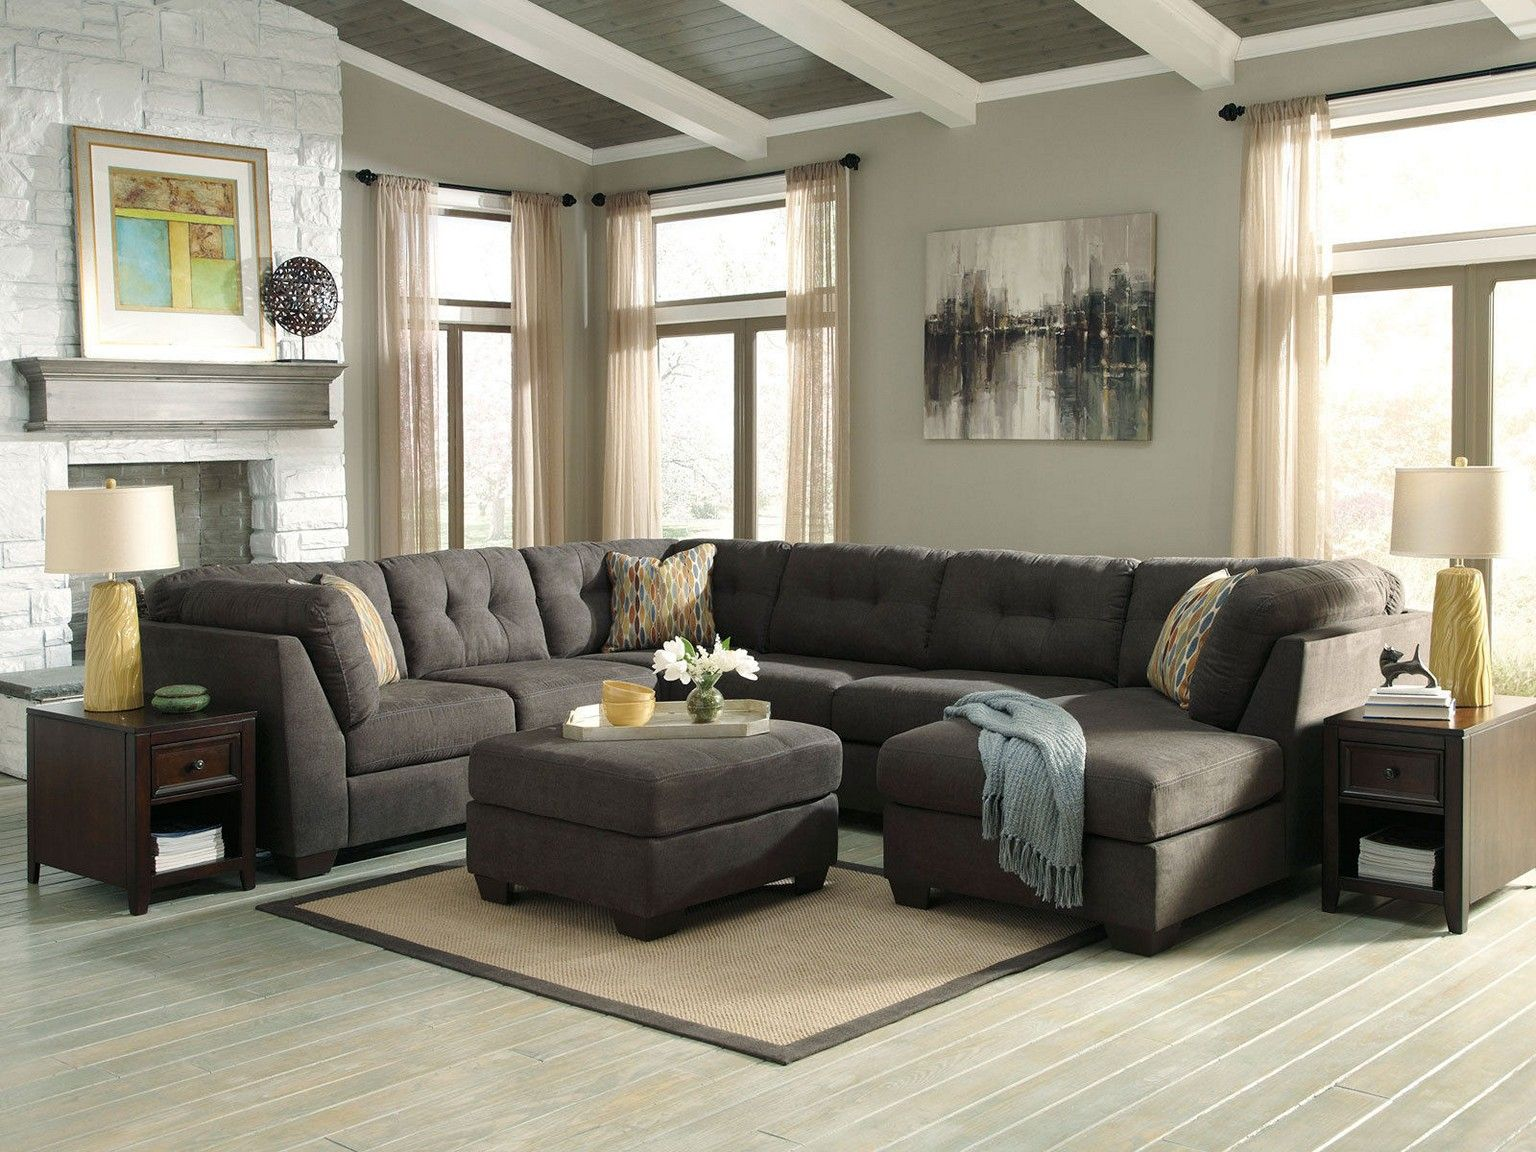 Cozy Cottage Living Room Ideas Pictures